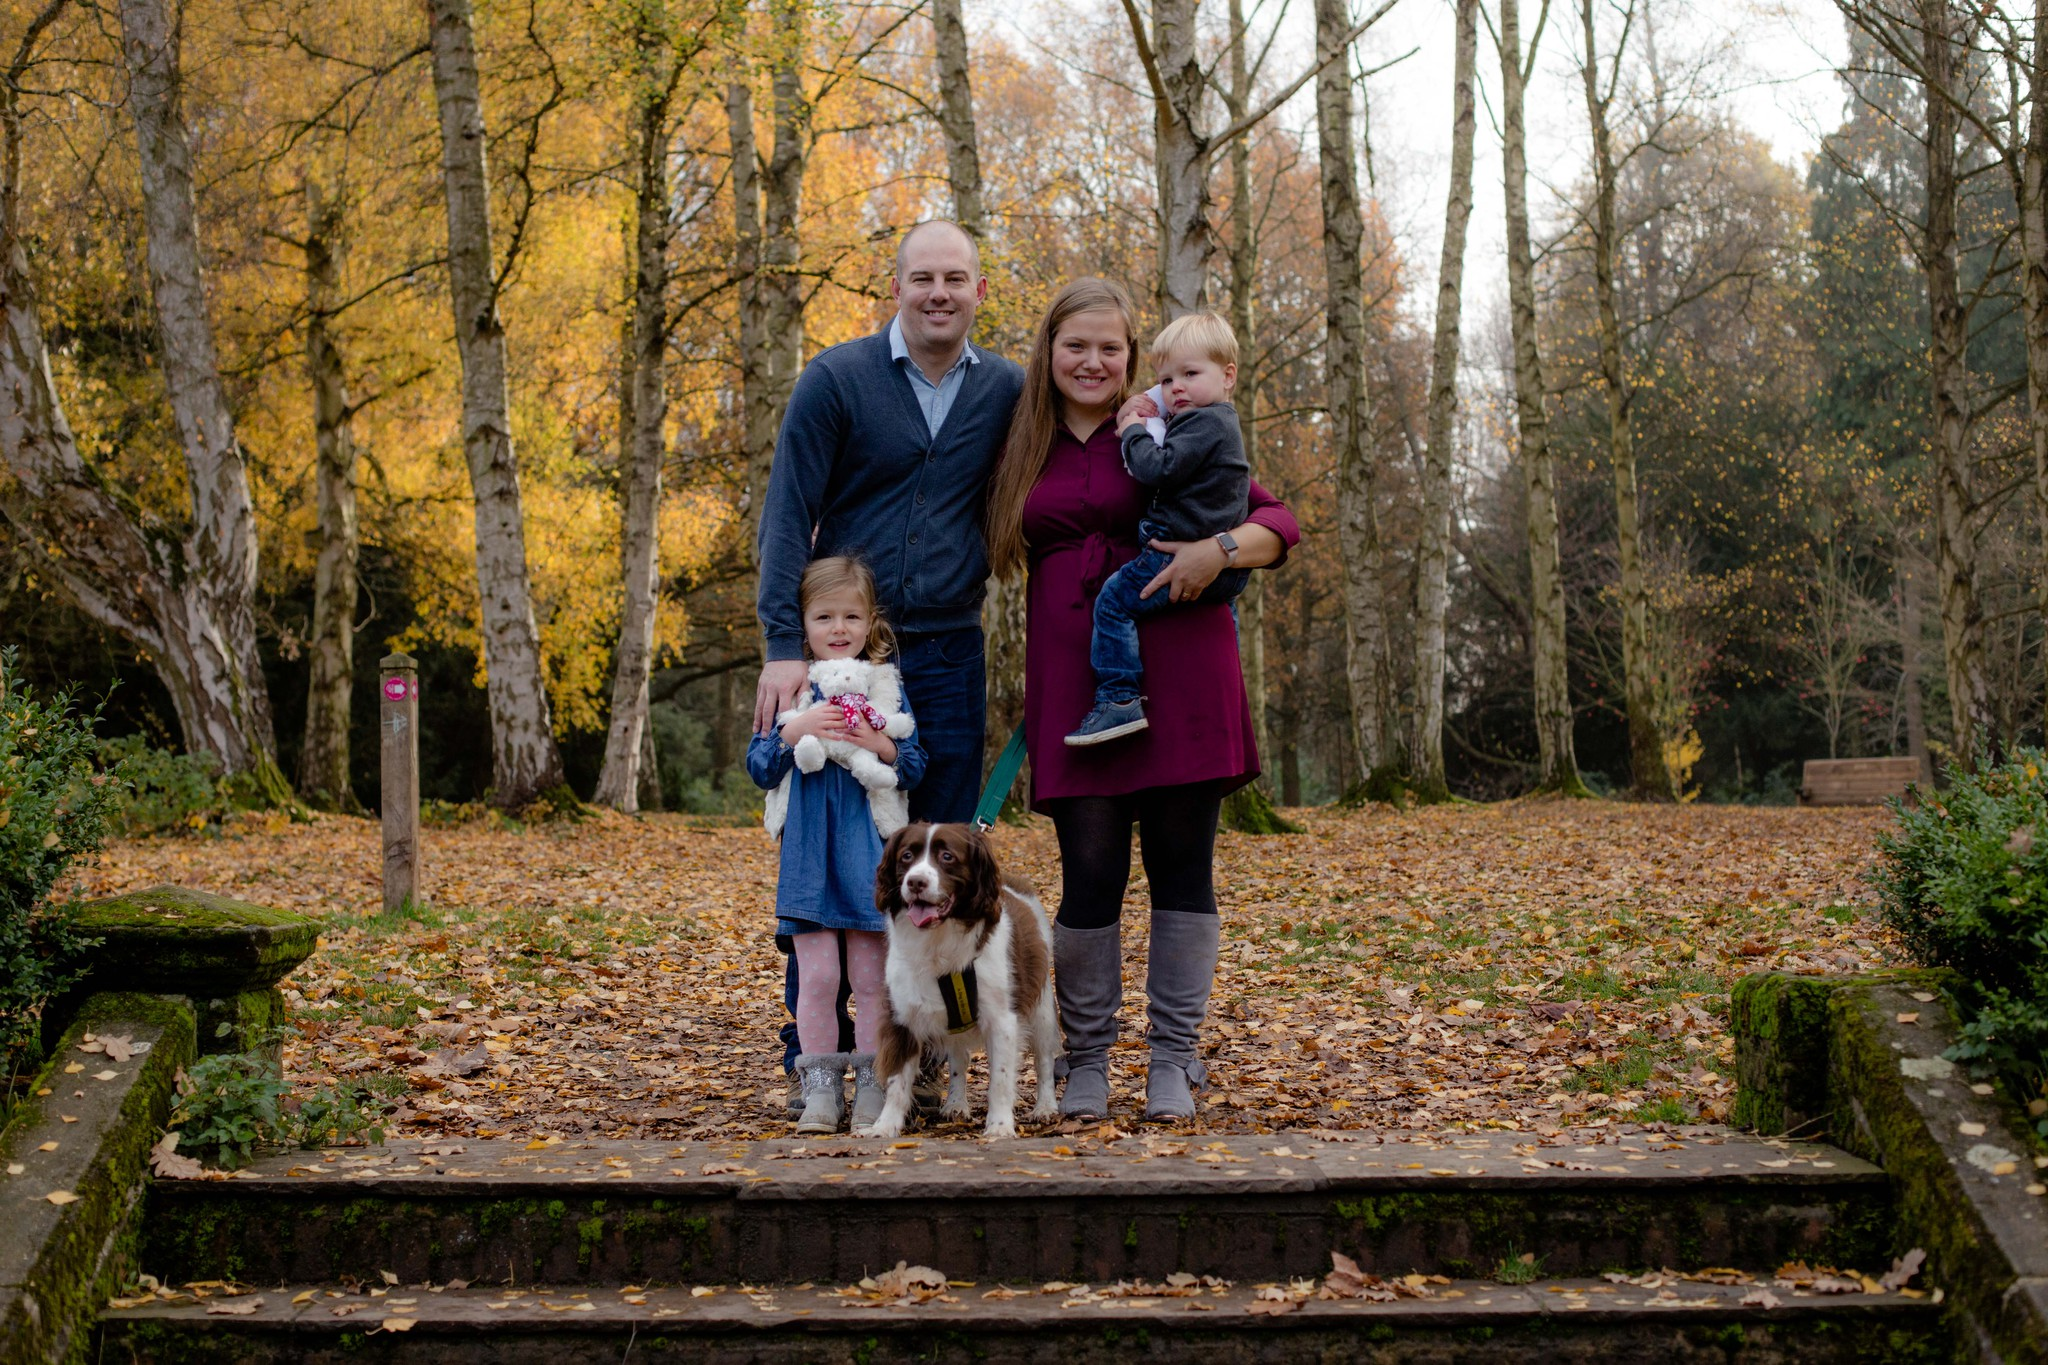 Shropshire Family Photographer